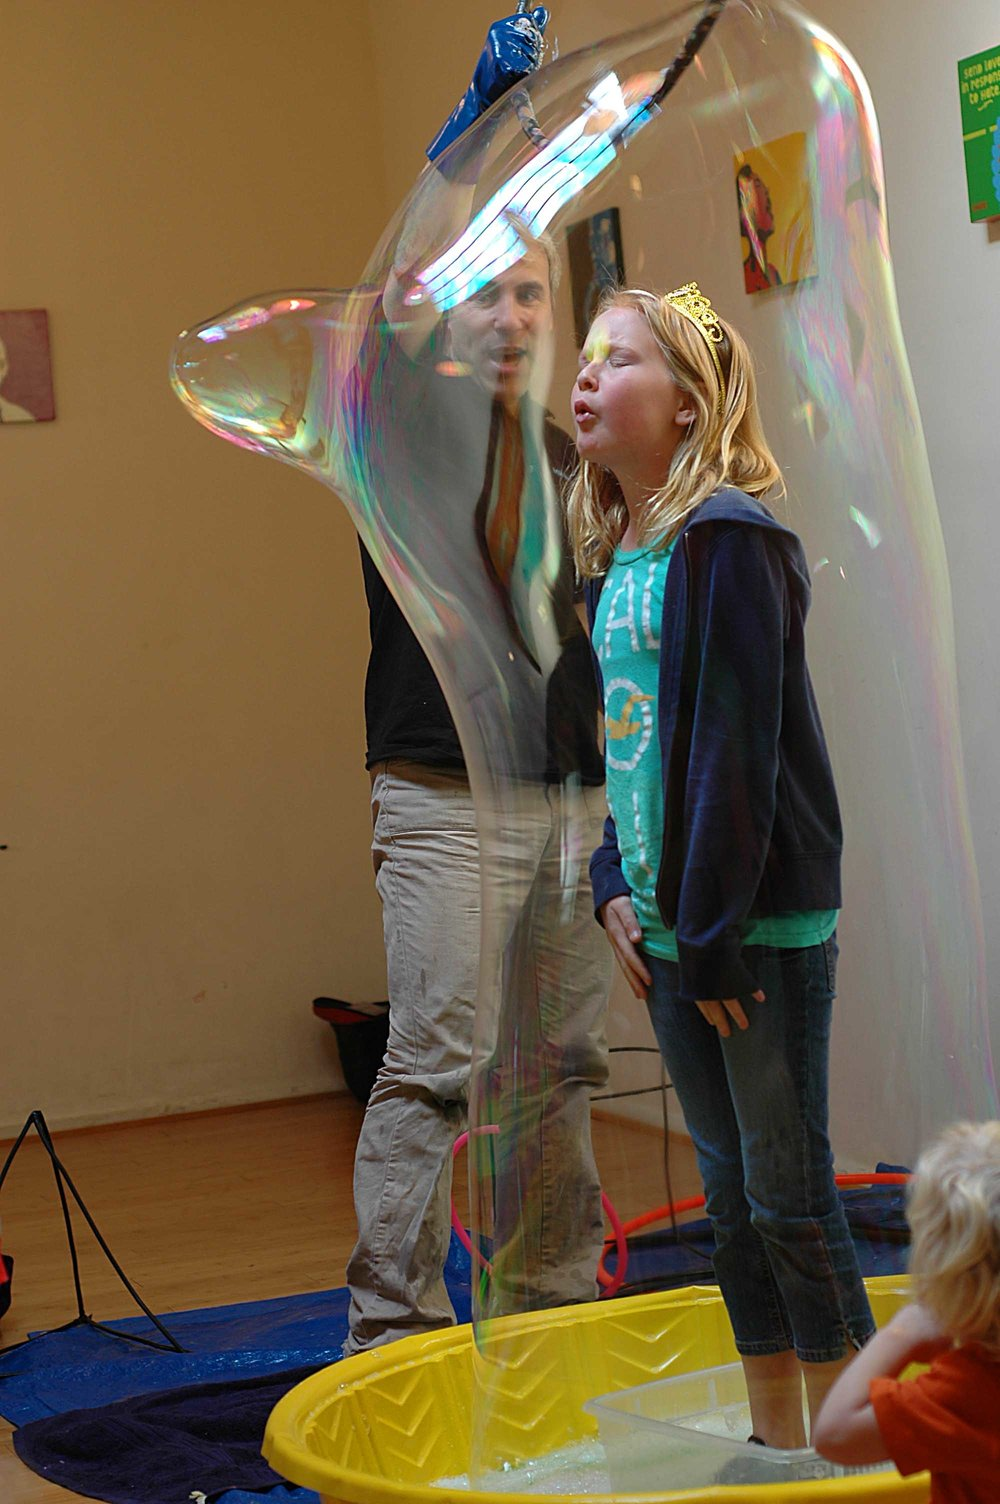 girl inside bubble 2.jpg